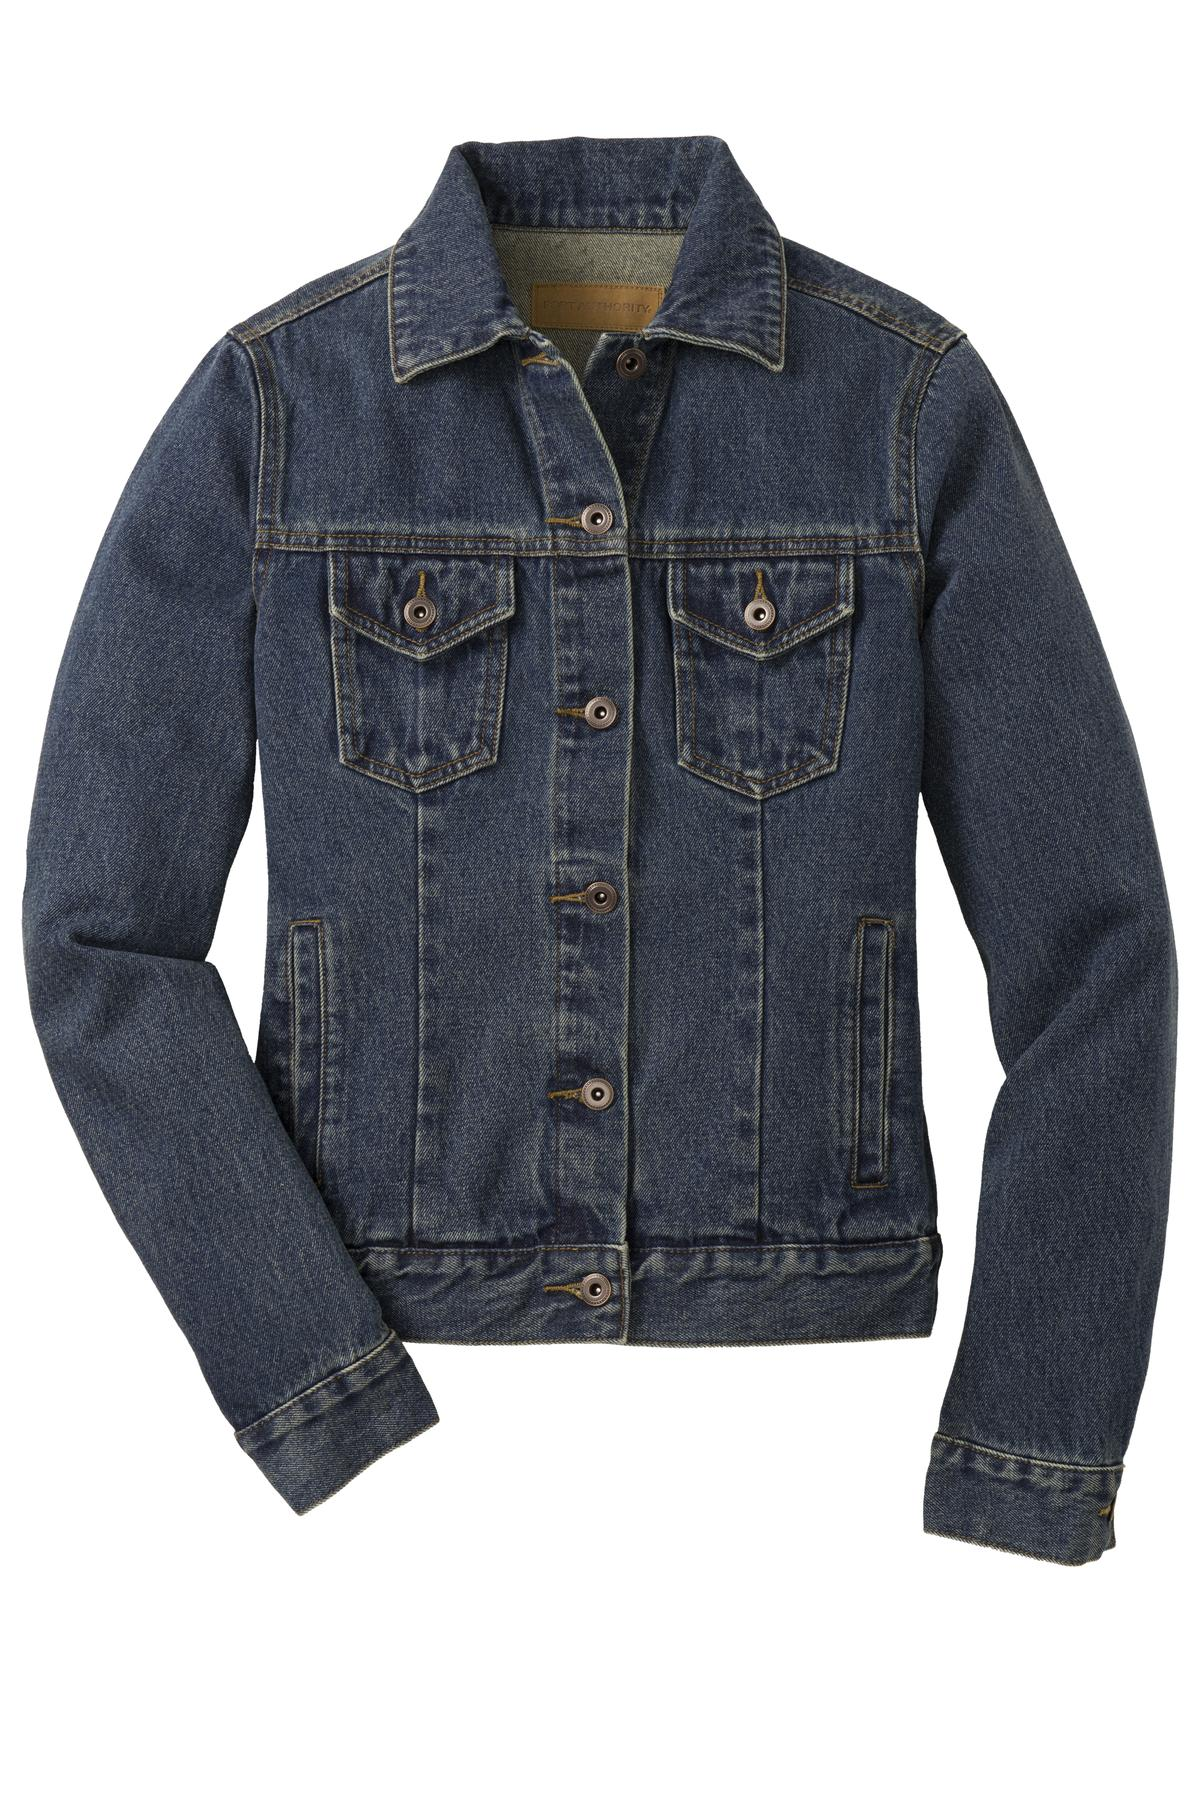 REALTOR® Ladies Denim Jacket (RCL3080)